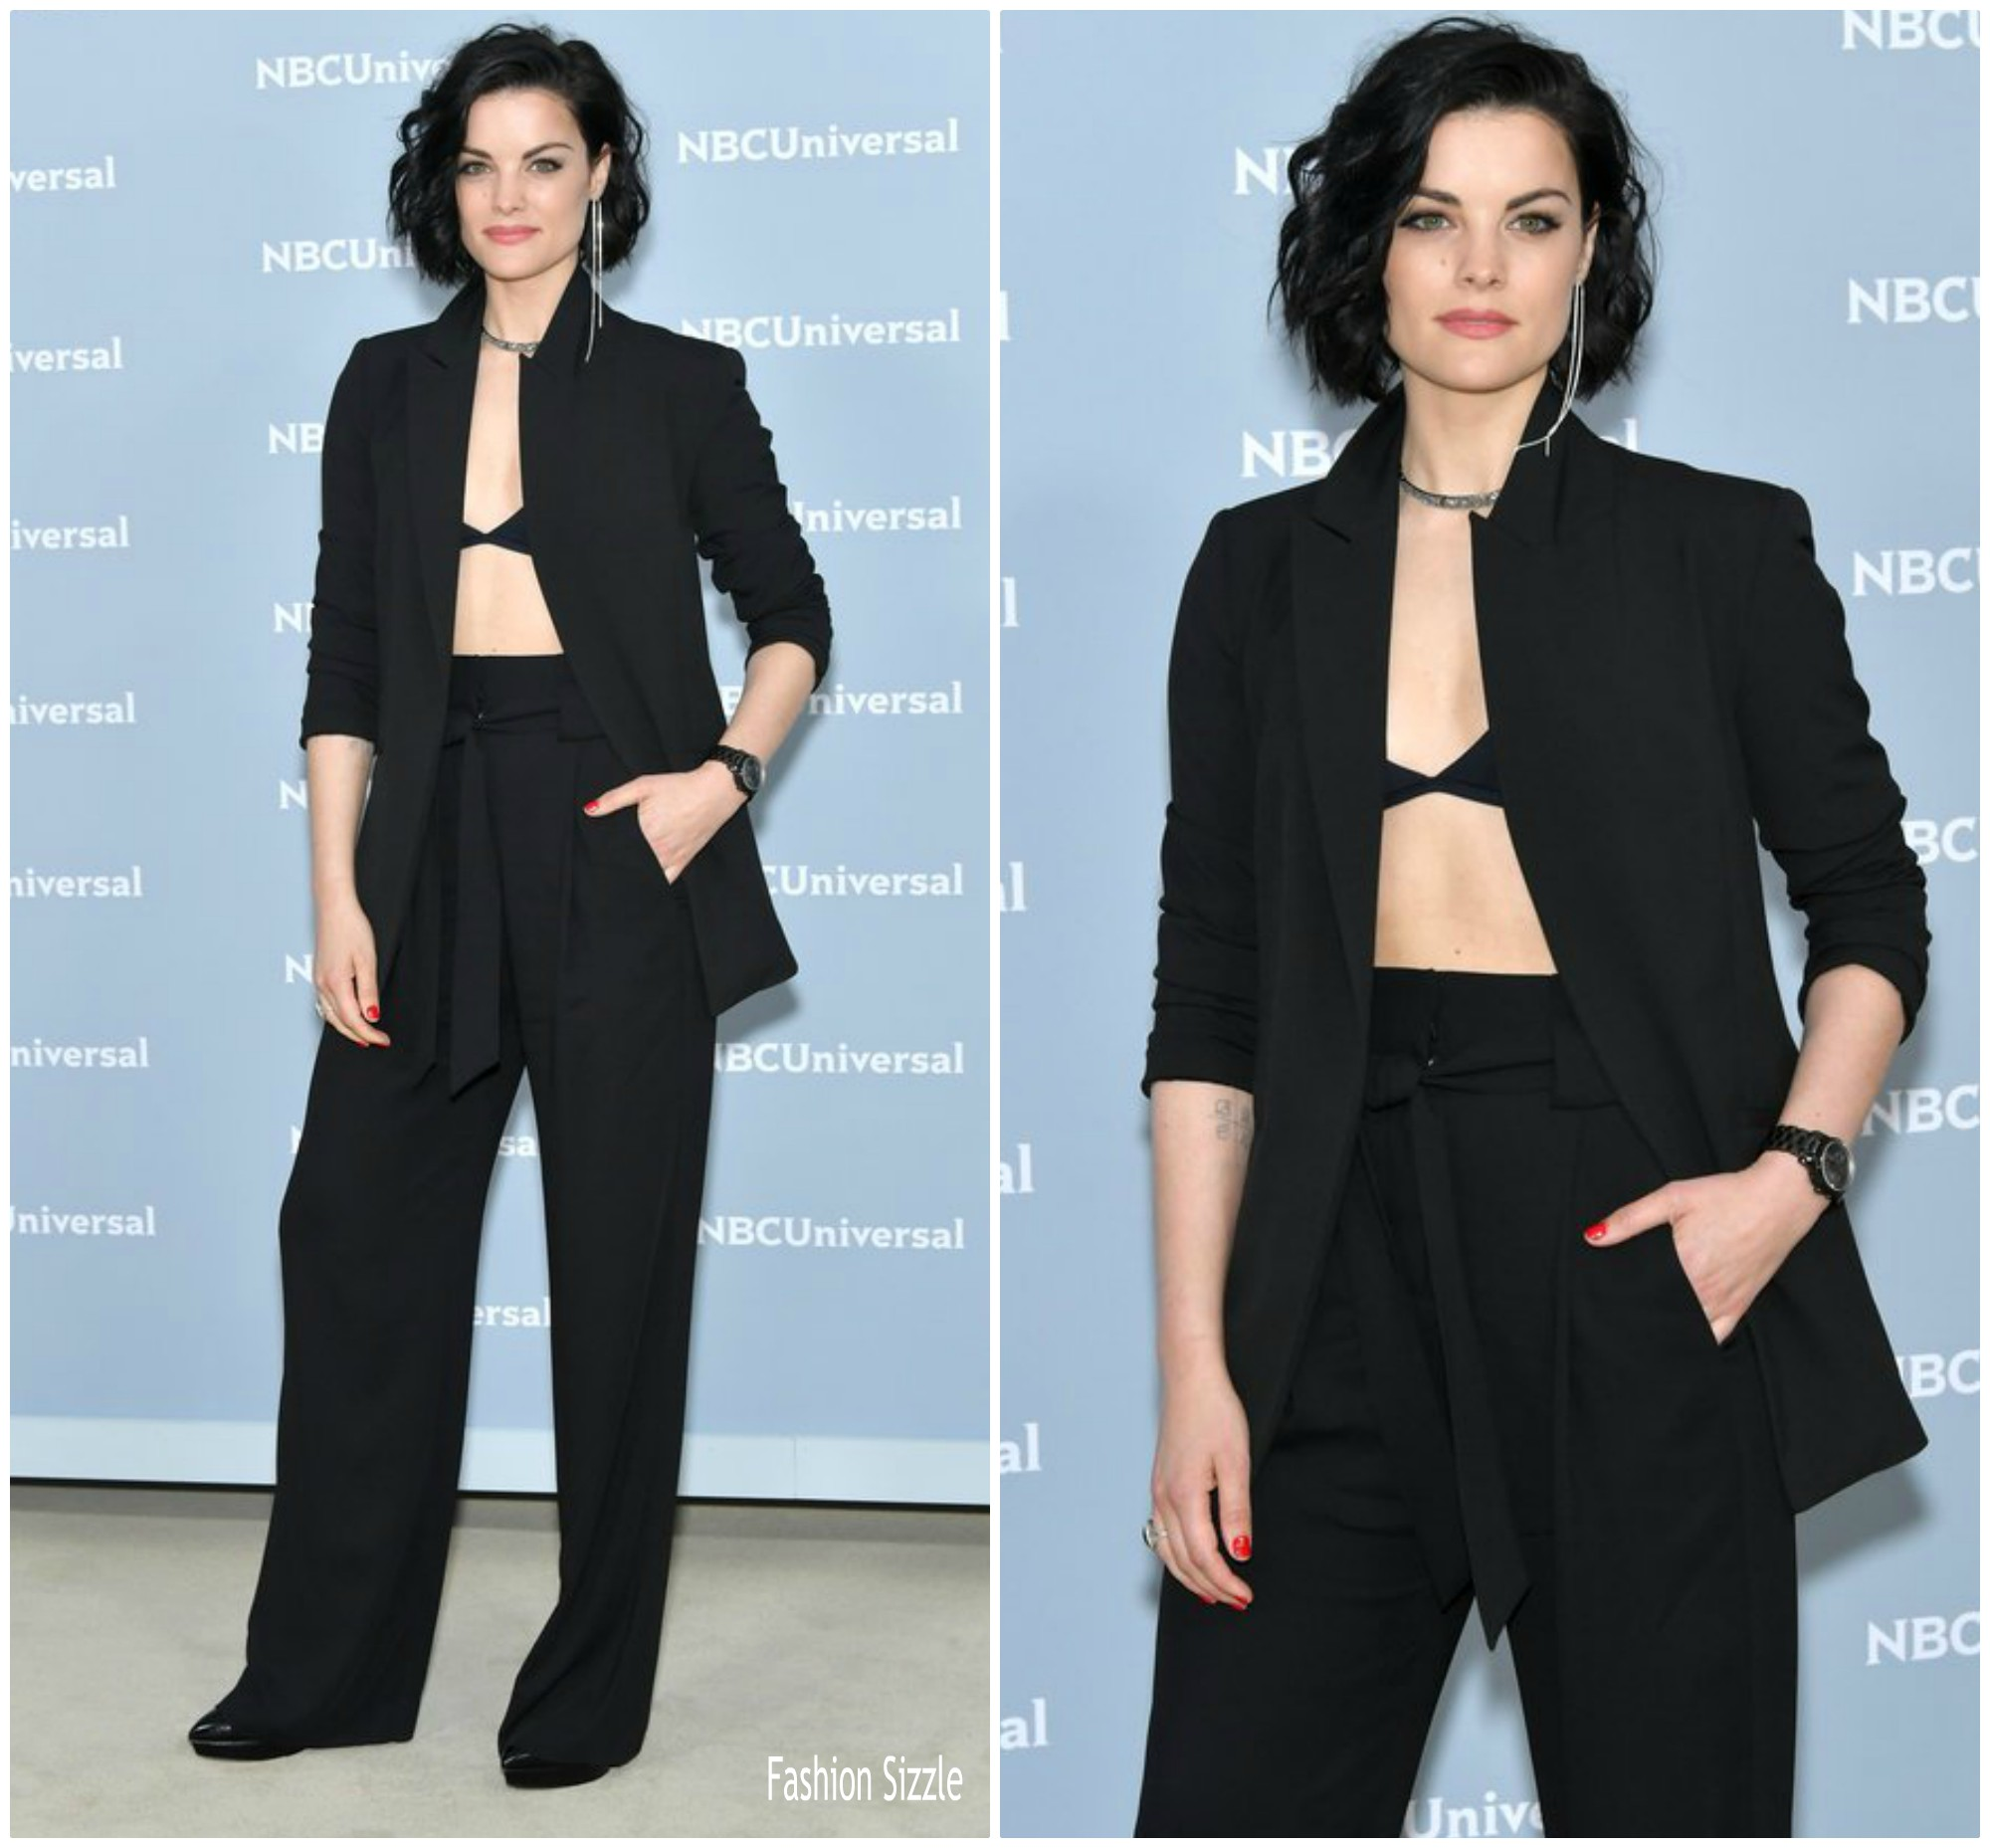 jaimie-alexander-in-michelle-mason-2018-nbc-upfronts-in-new-york